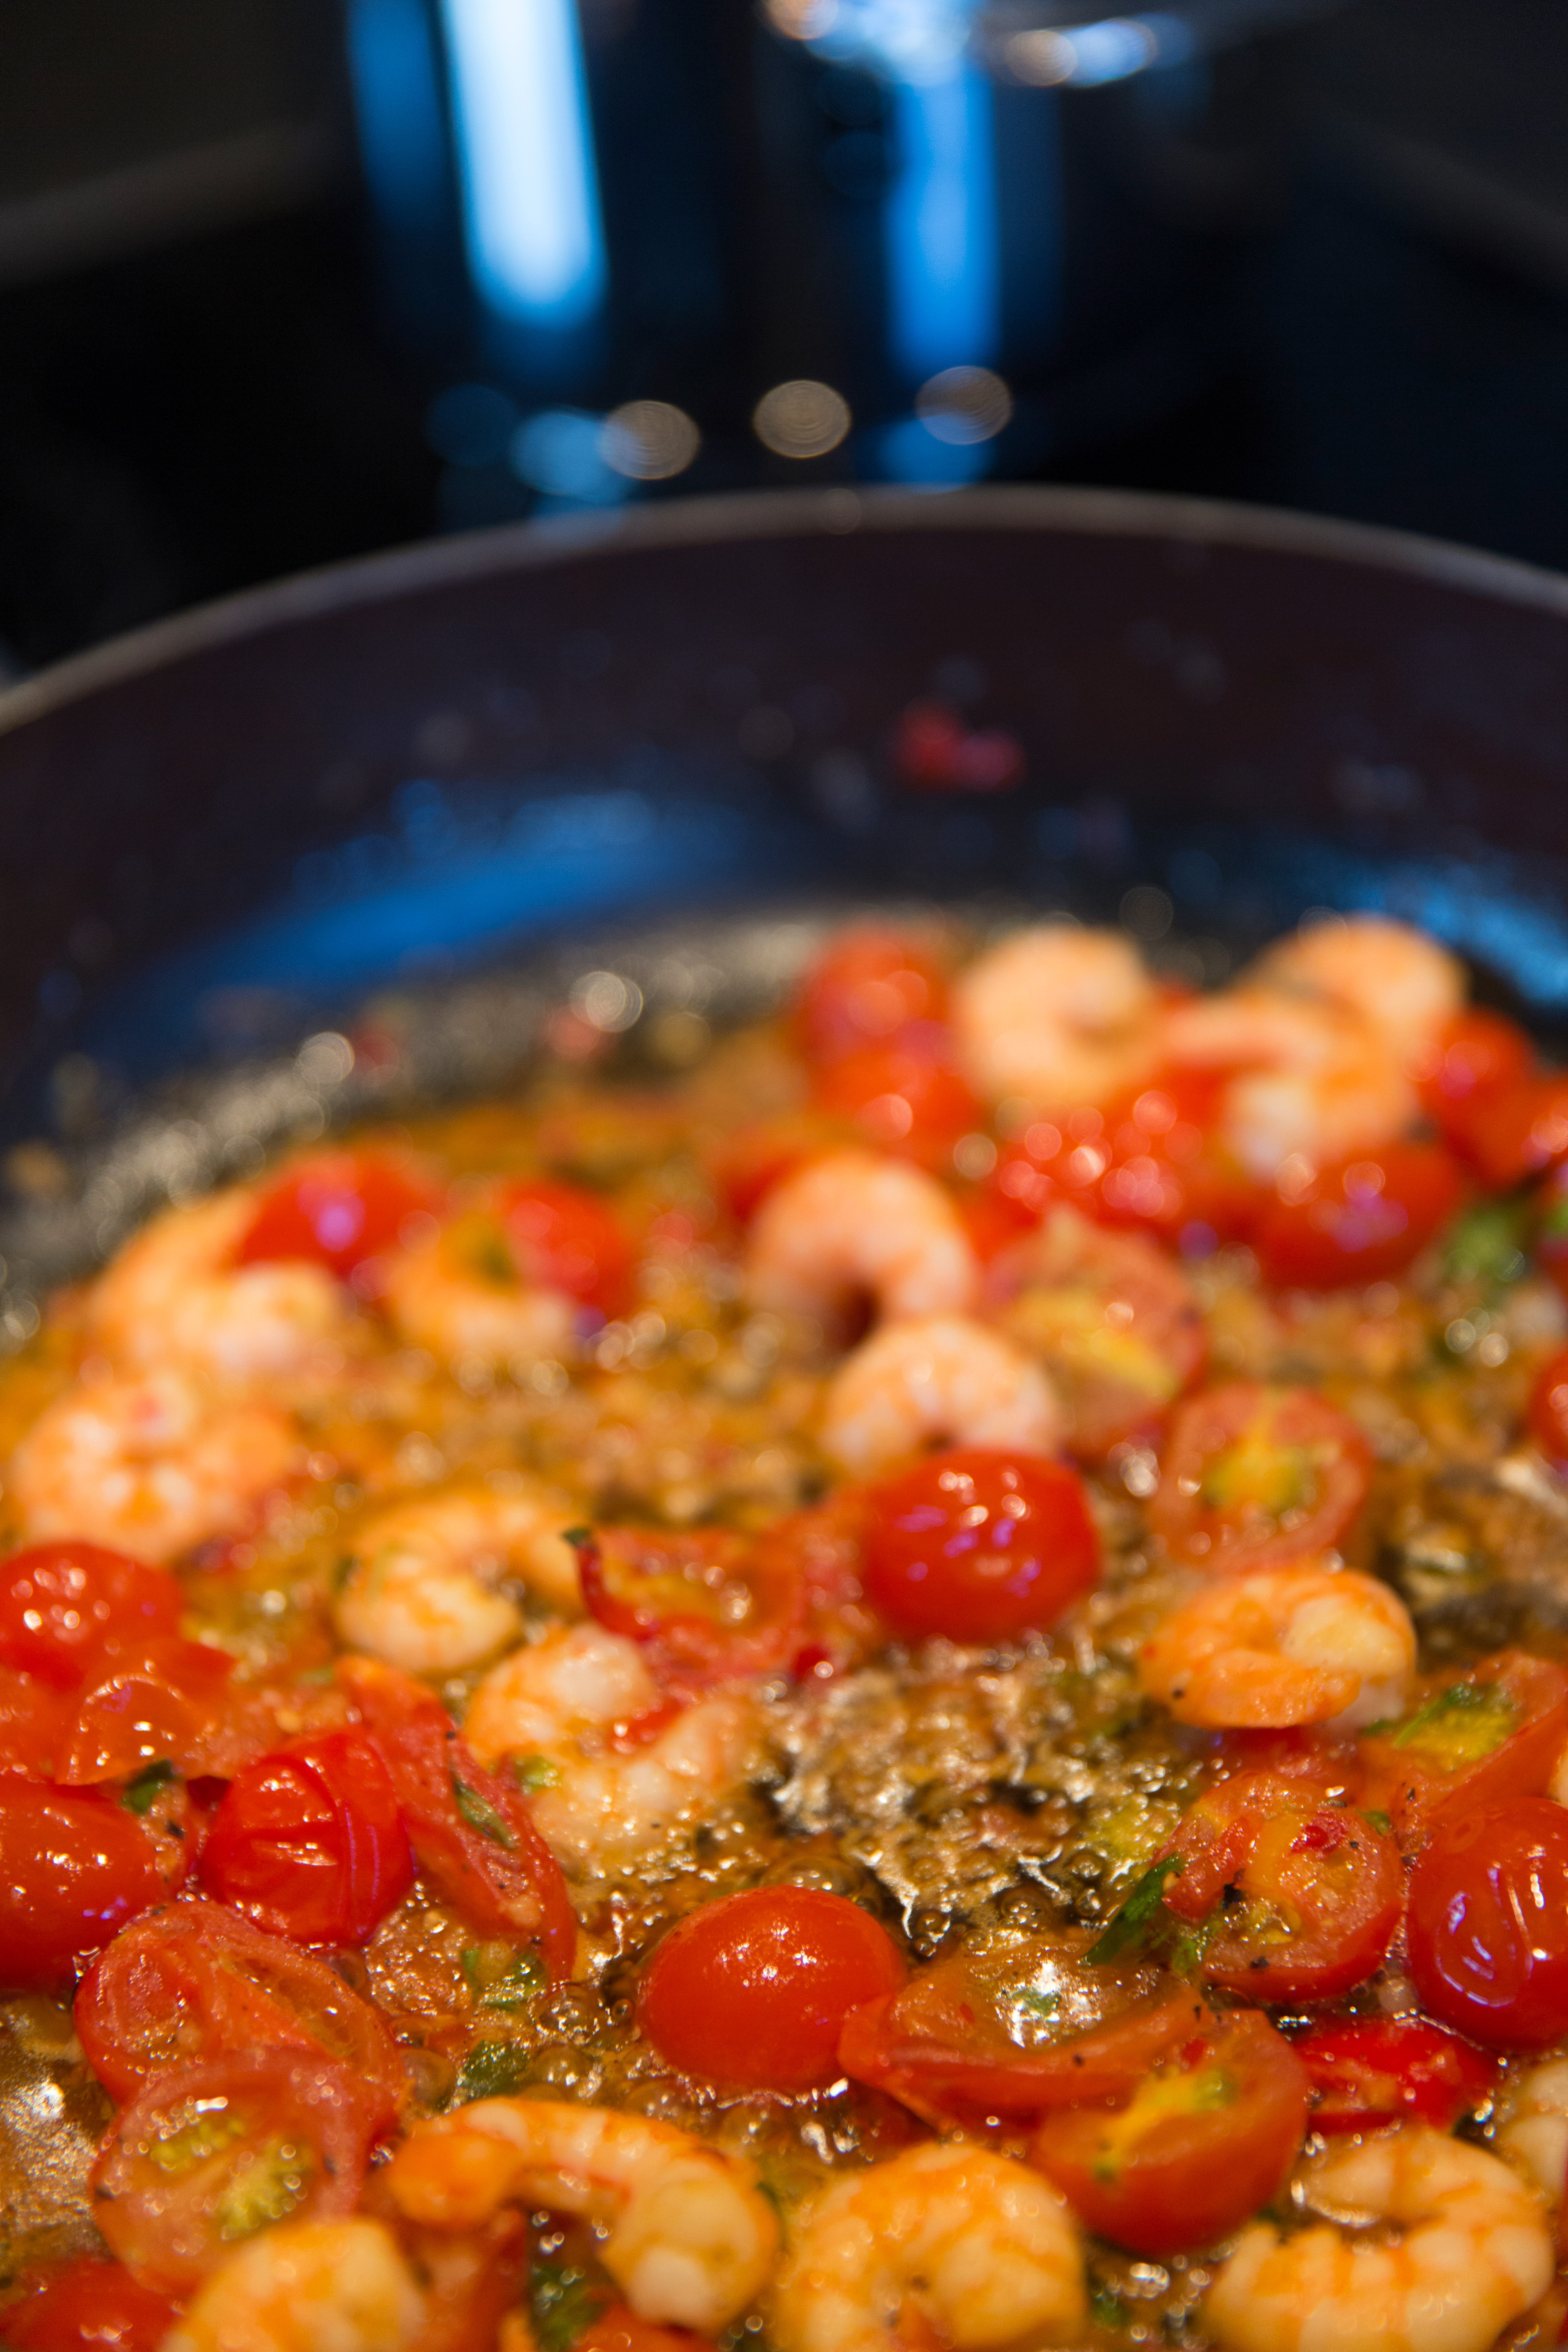 Tomatoes sauteed with shrimp dish photo